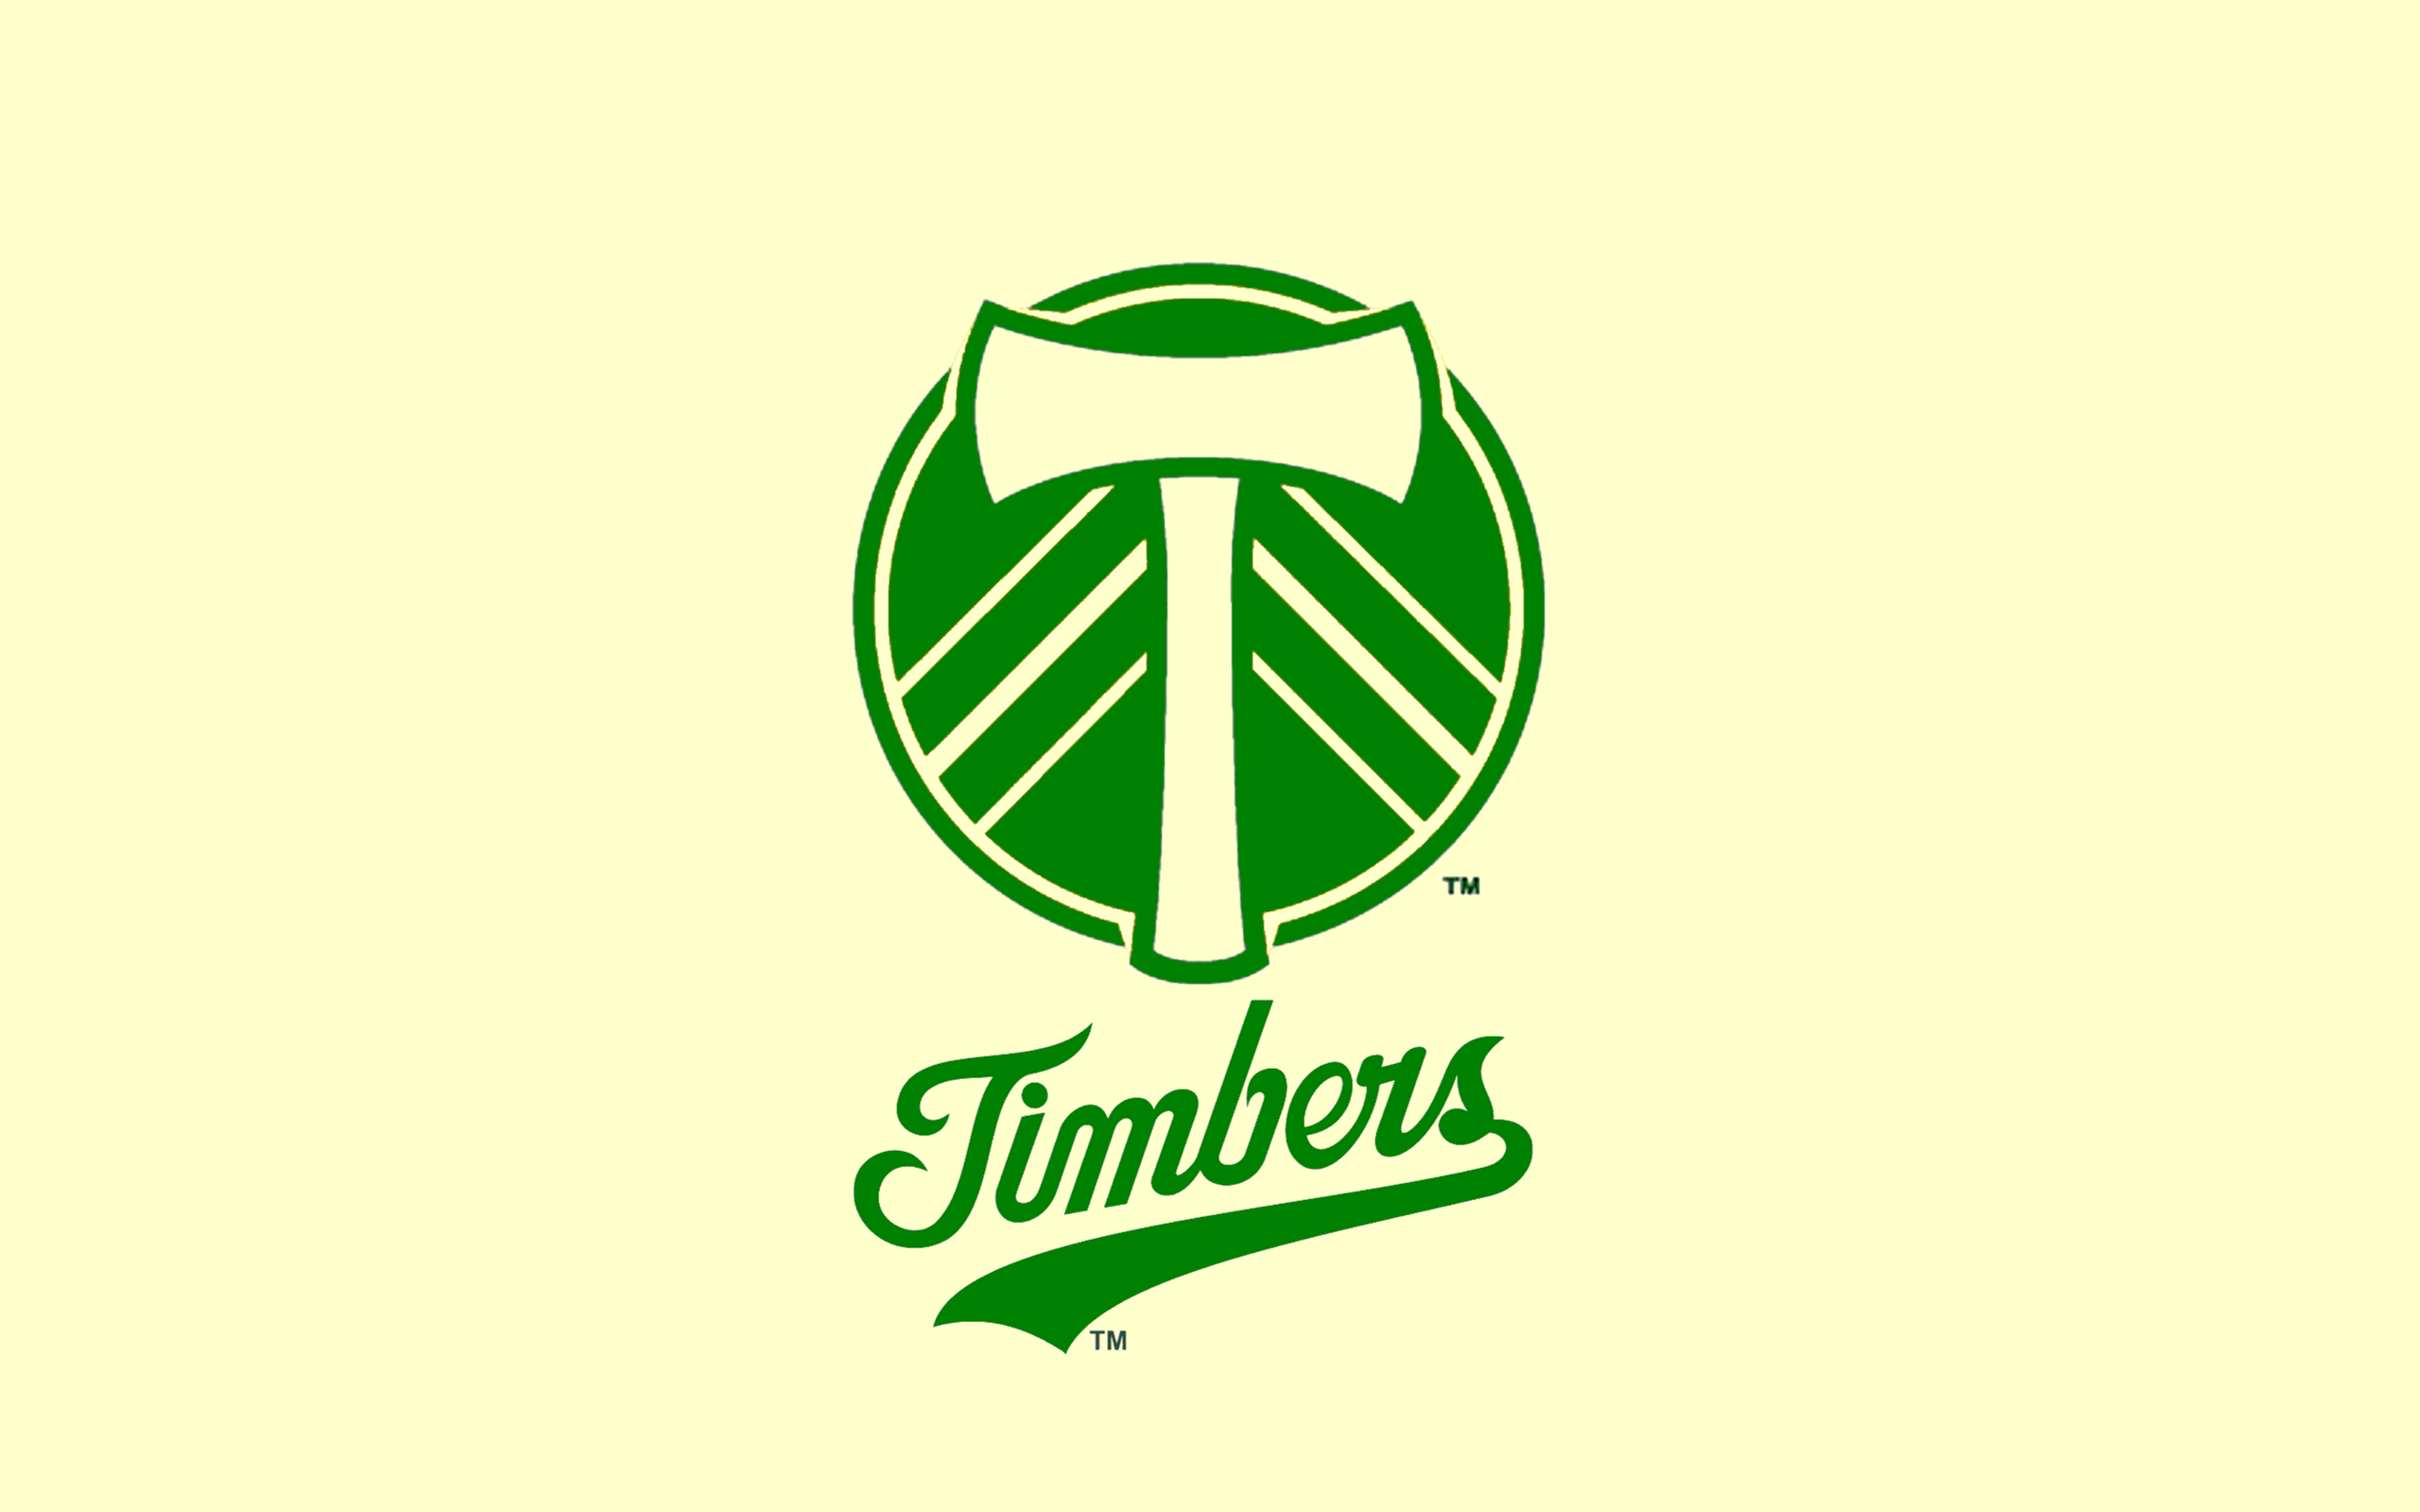 2560x1600 - Portland Timbers Wallpapers 11